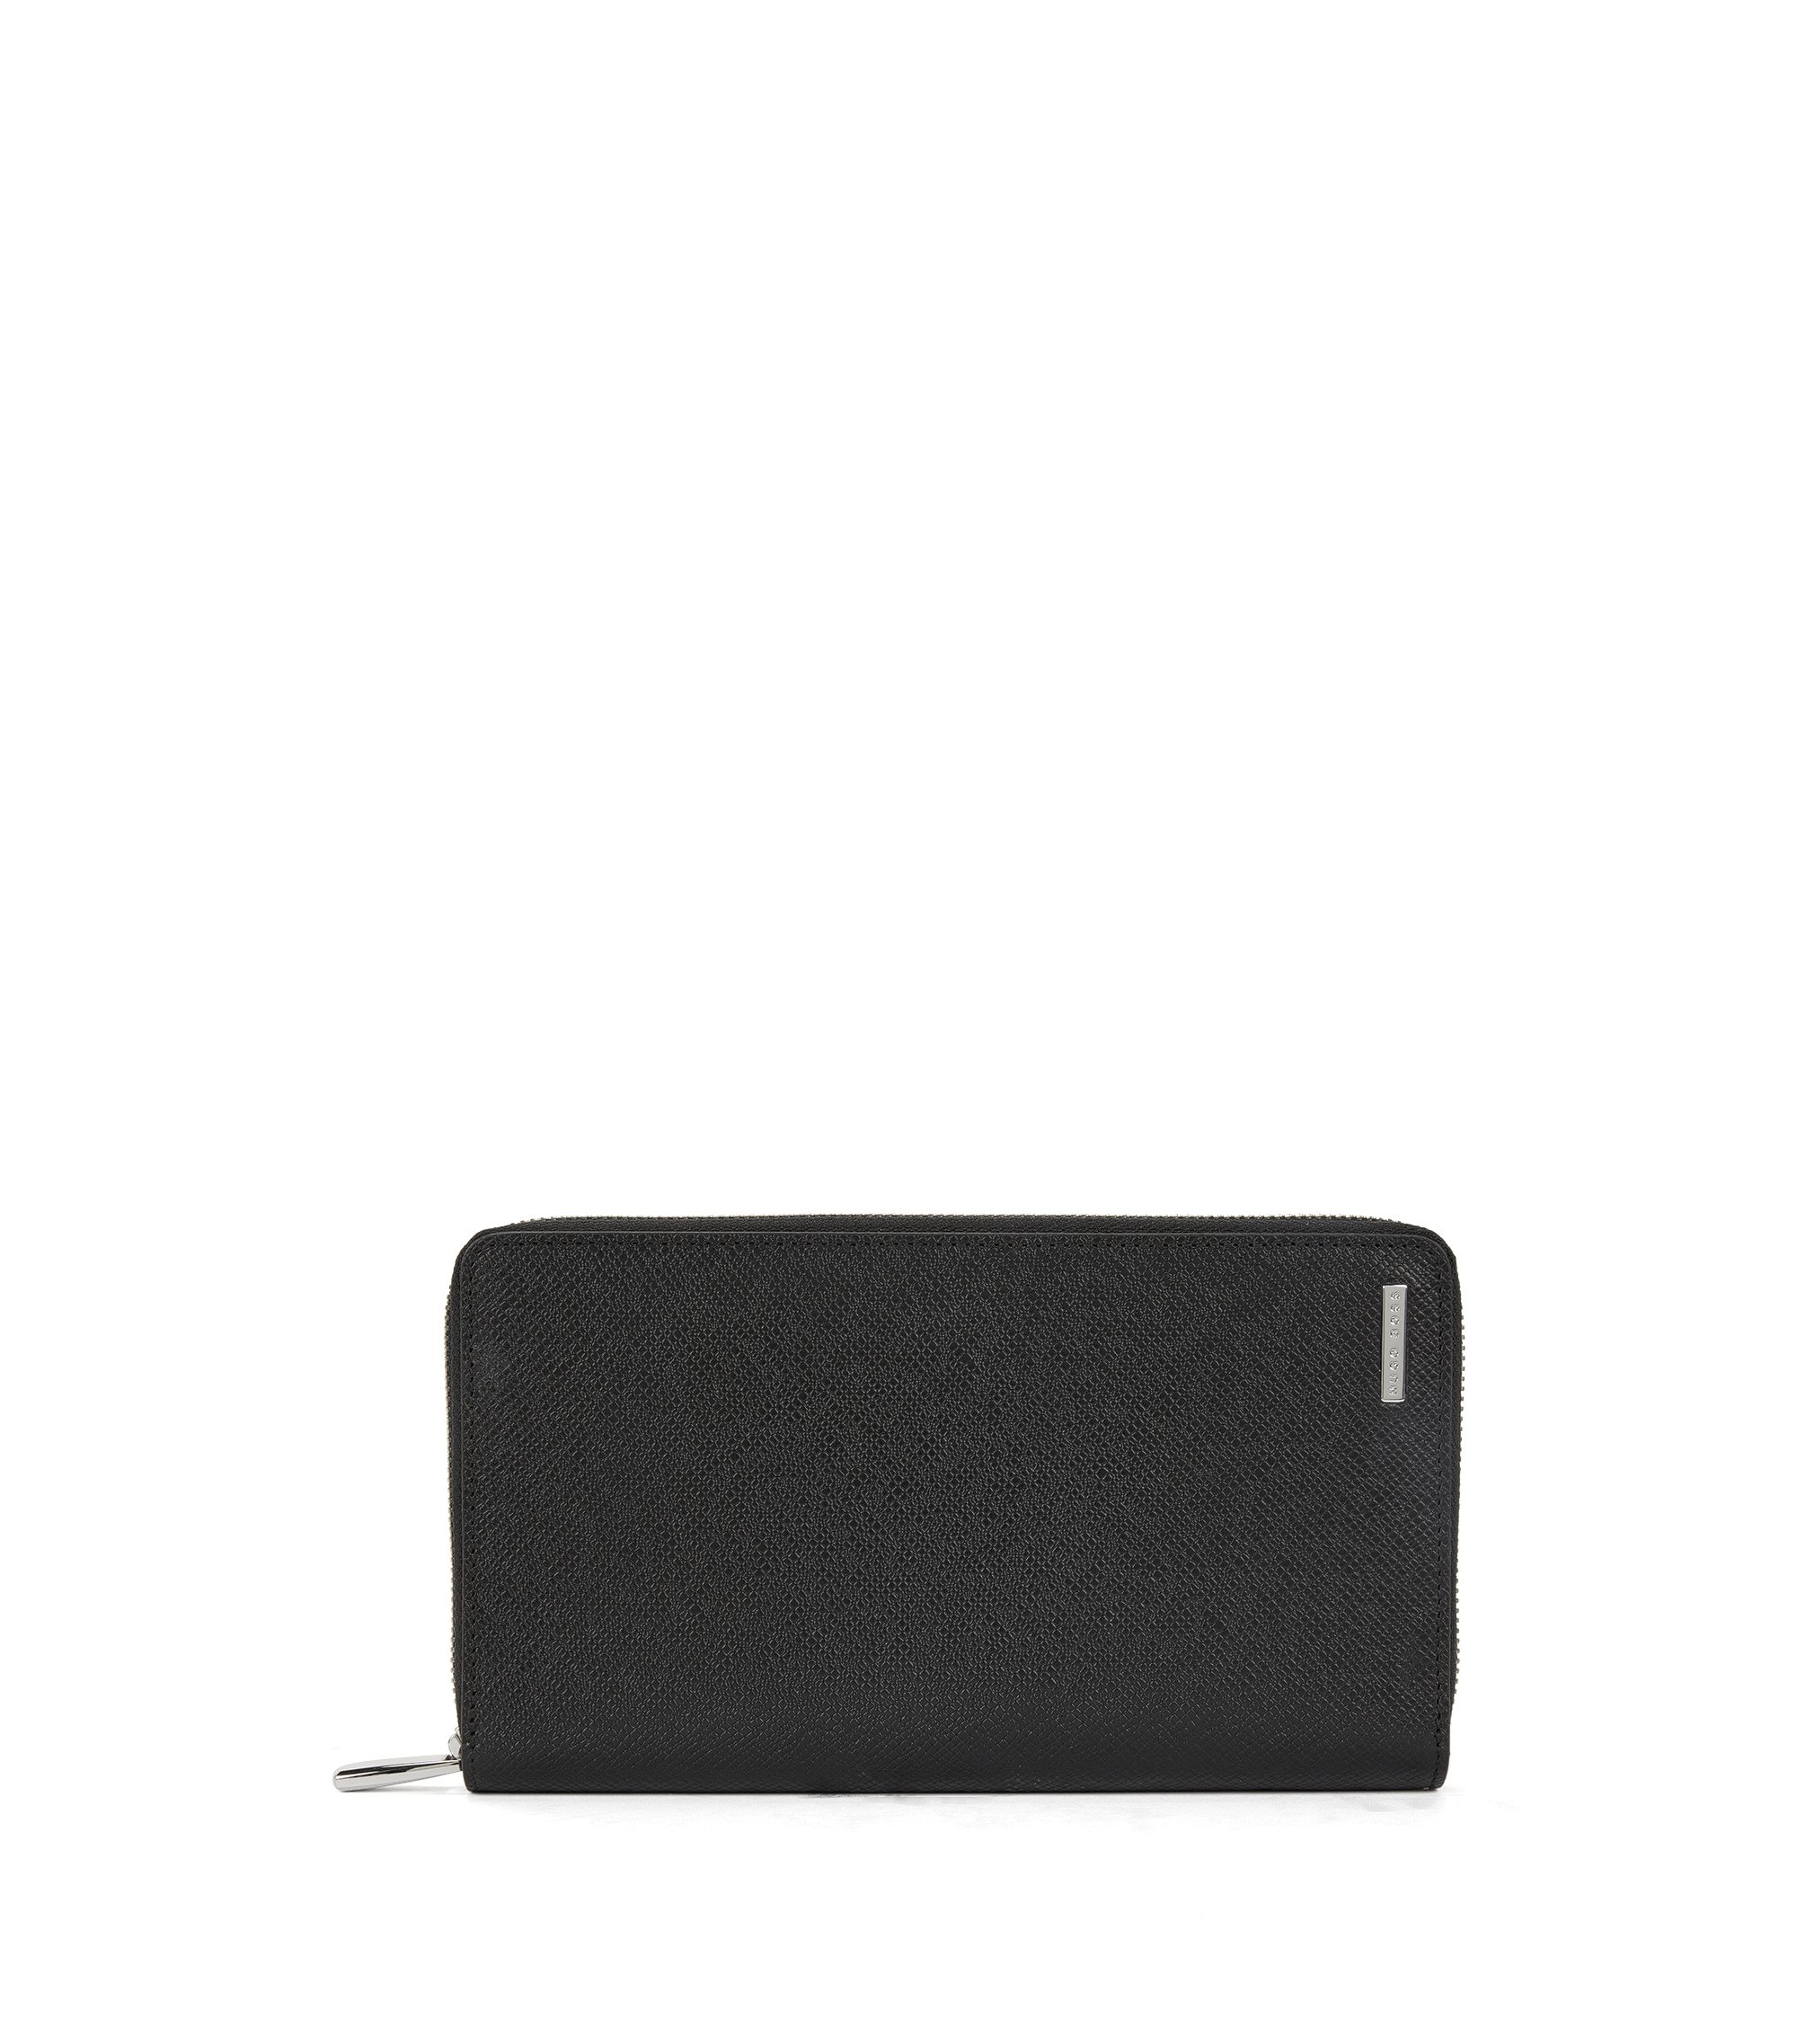 Leather Zip-Around Wallet | Signature S Zip, Black